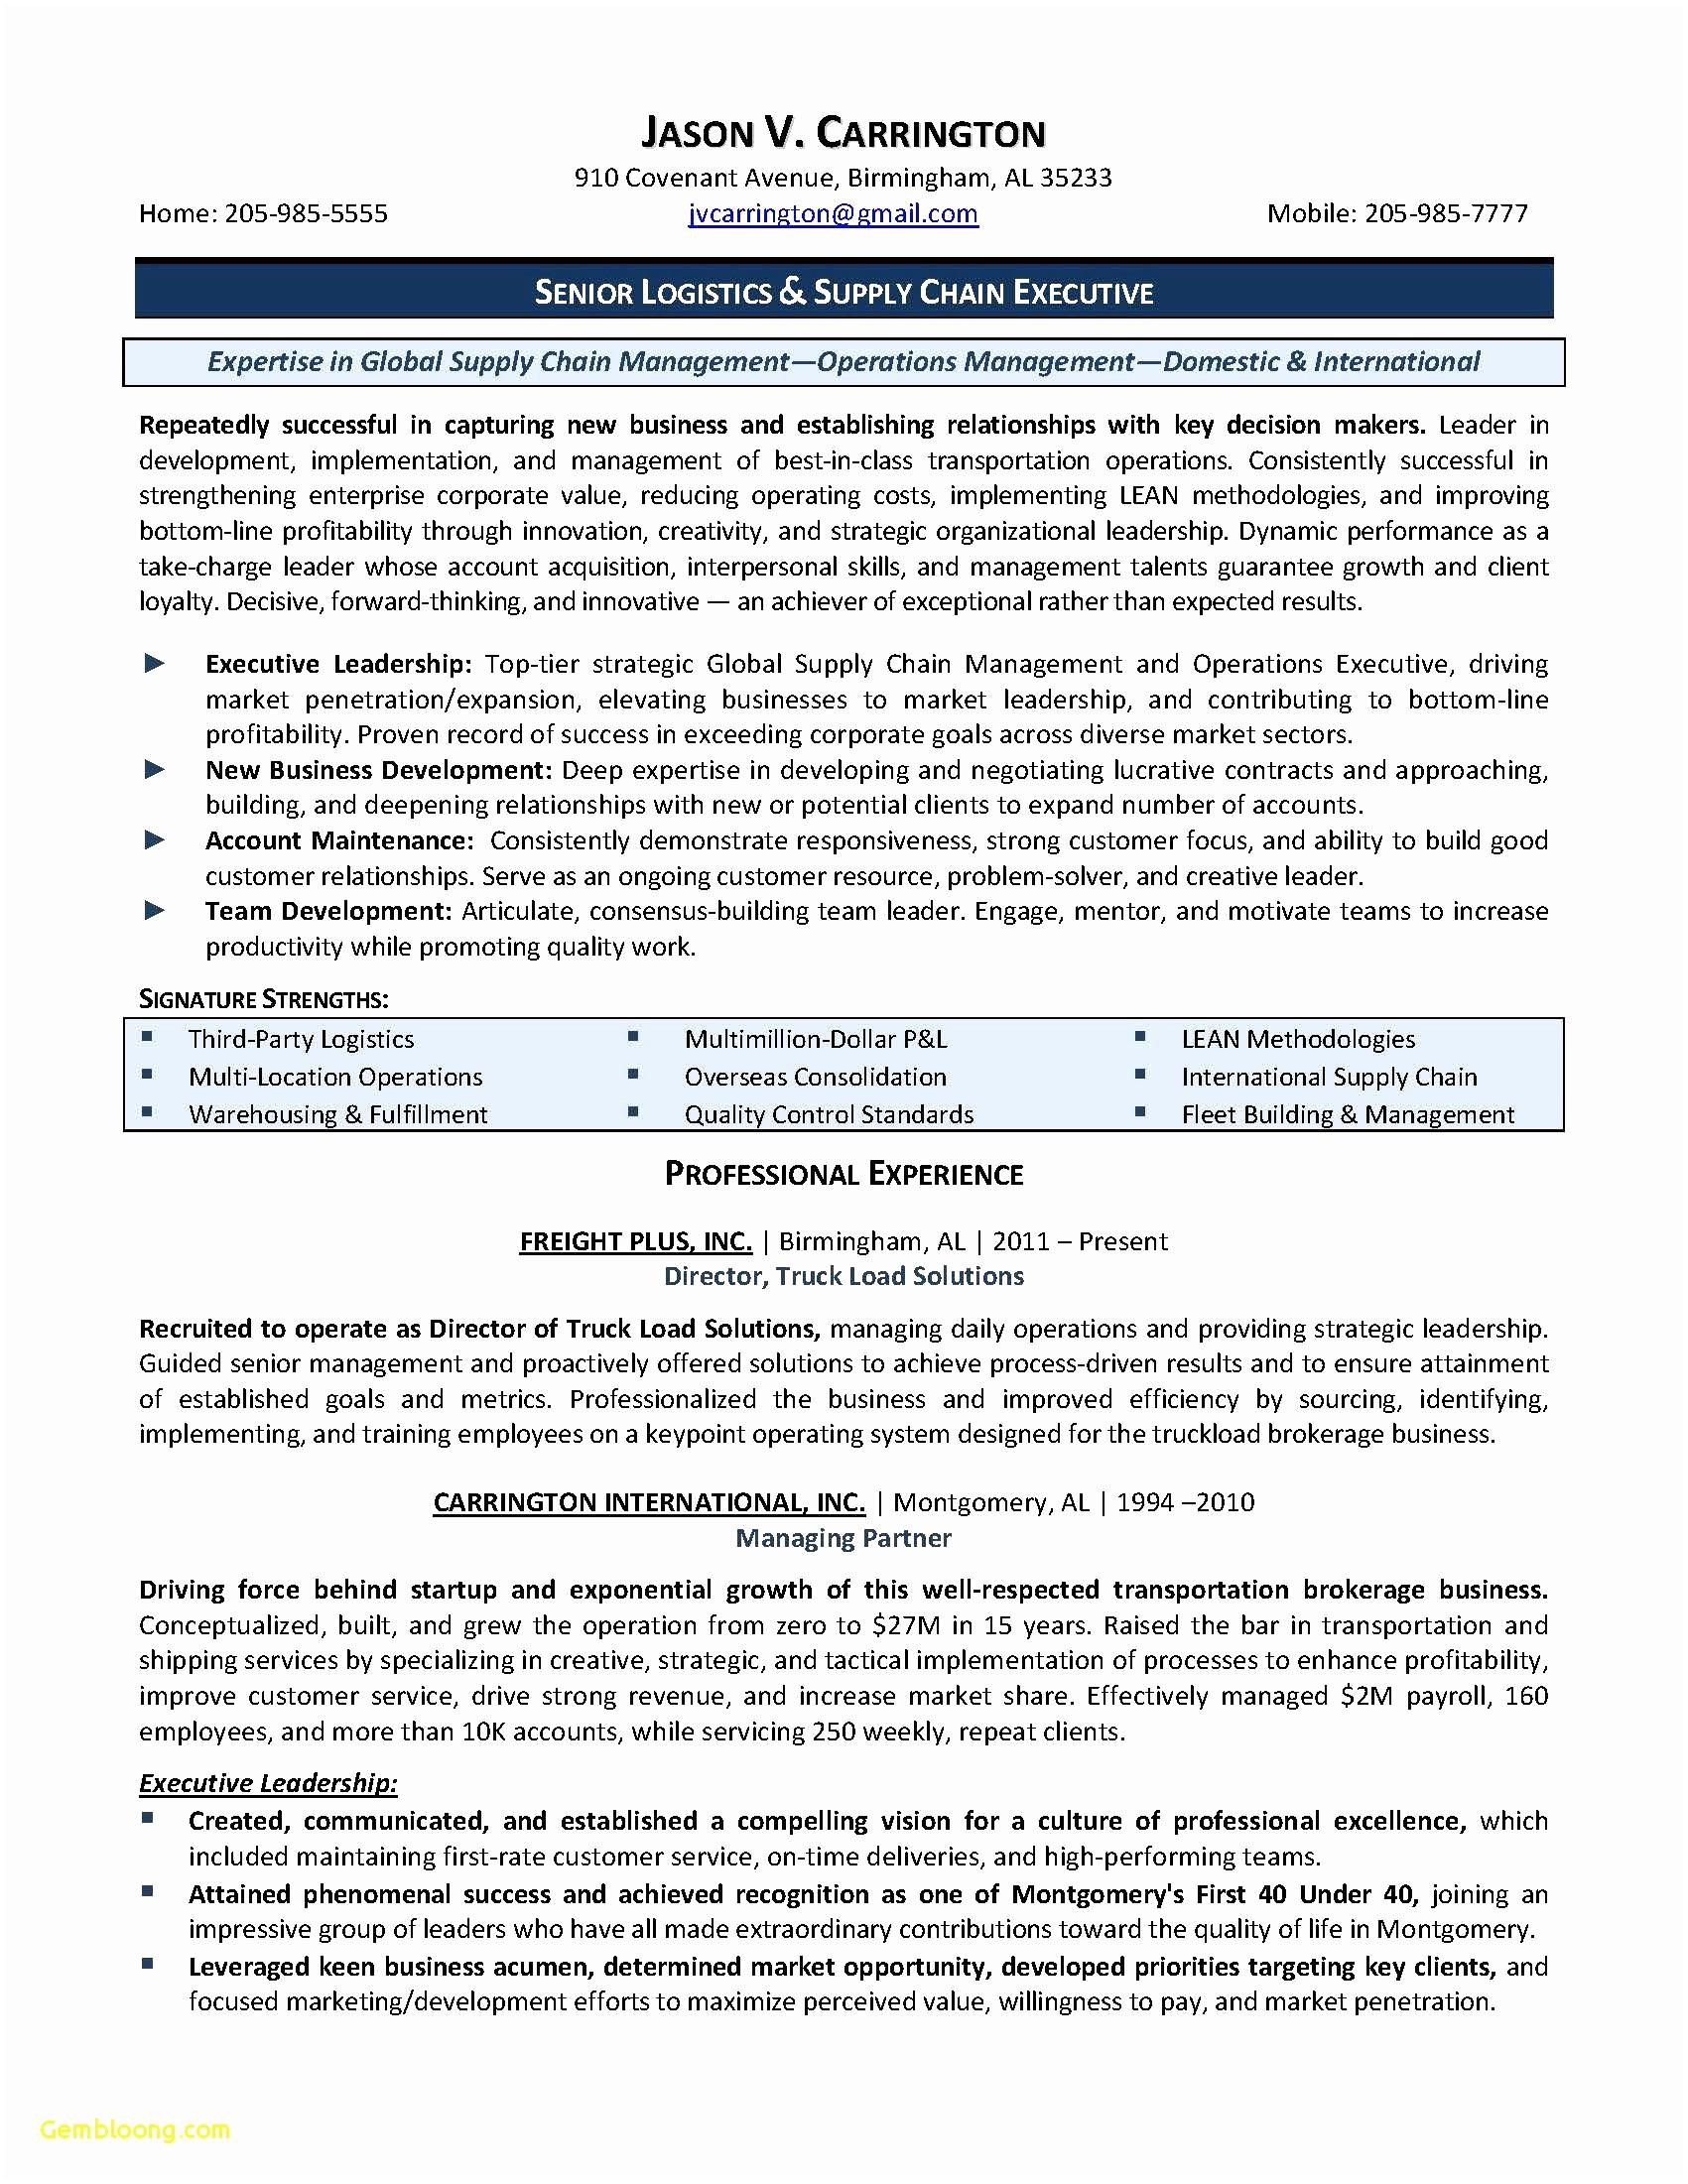 Senior Executive Resume Template - Supply Chain Management Resume Sample